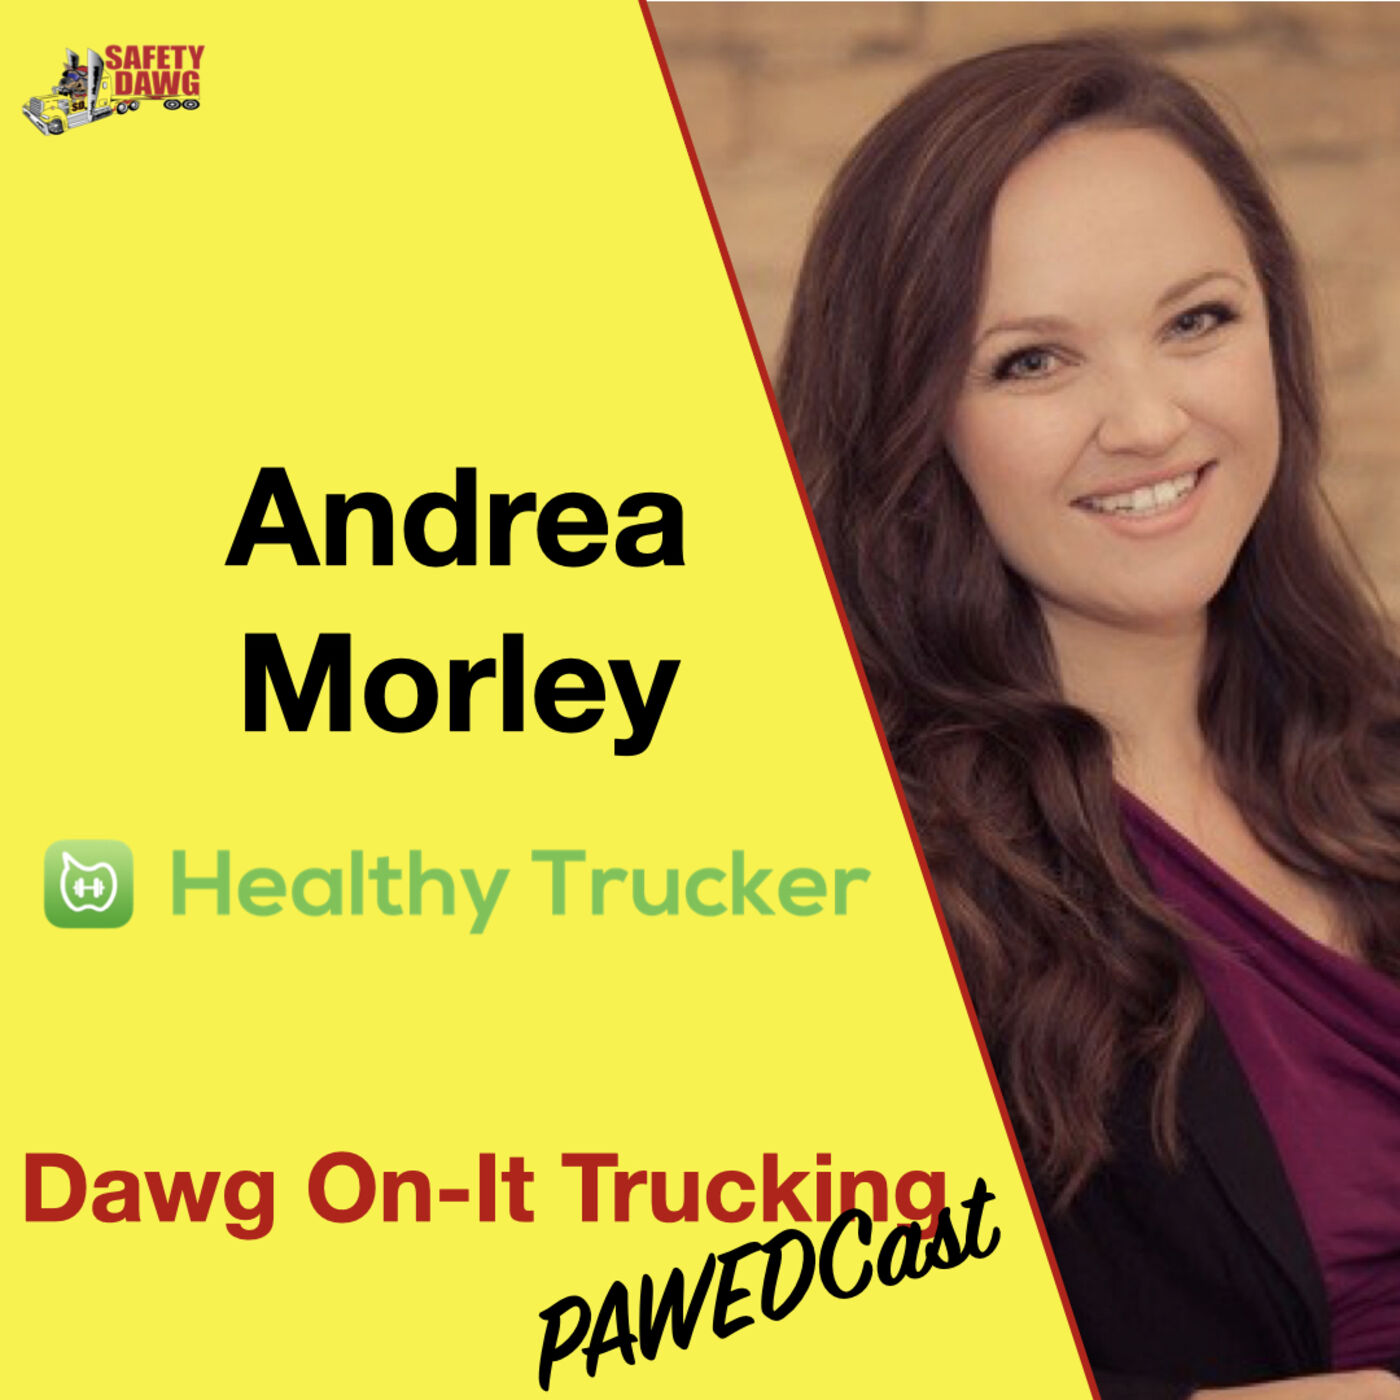 Andrea Morley of Healthy Trucker is on the Dawg On-It Trucking Pawedcast, Episode 12